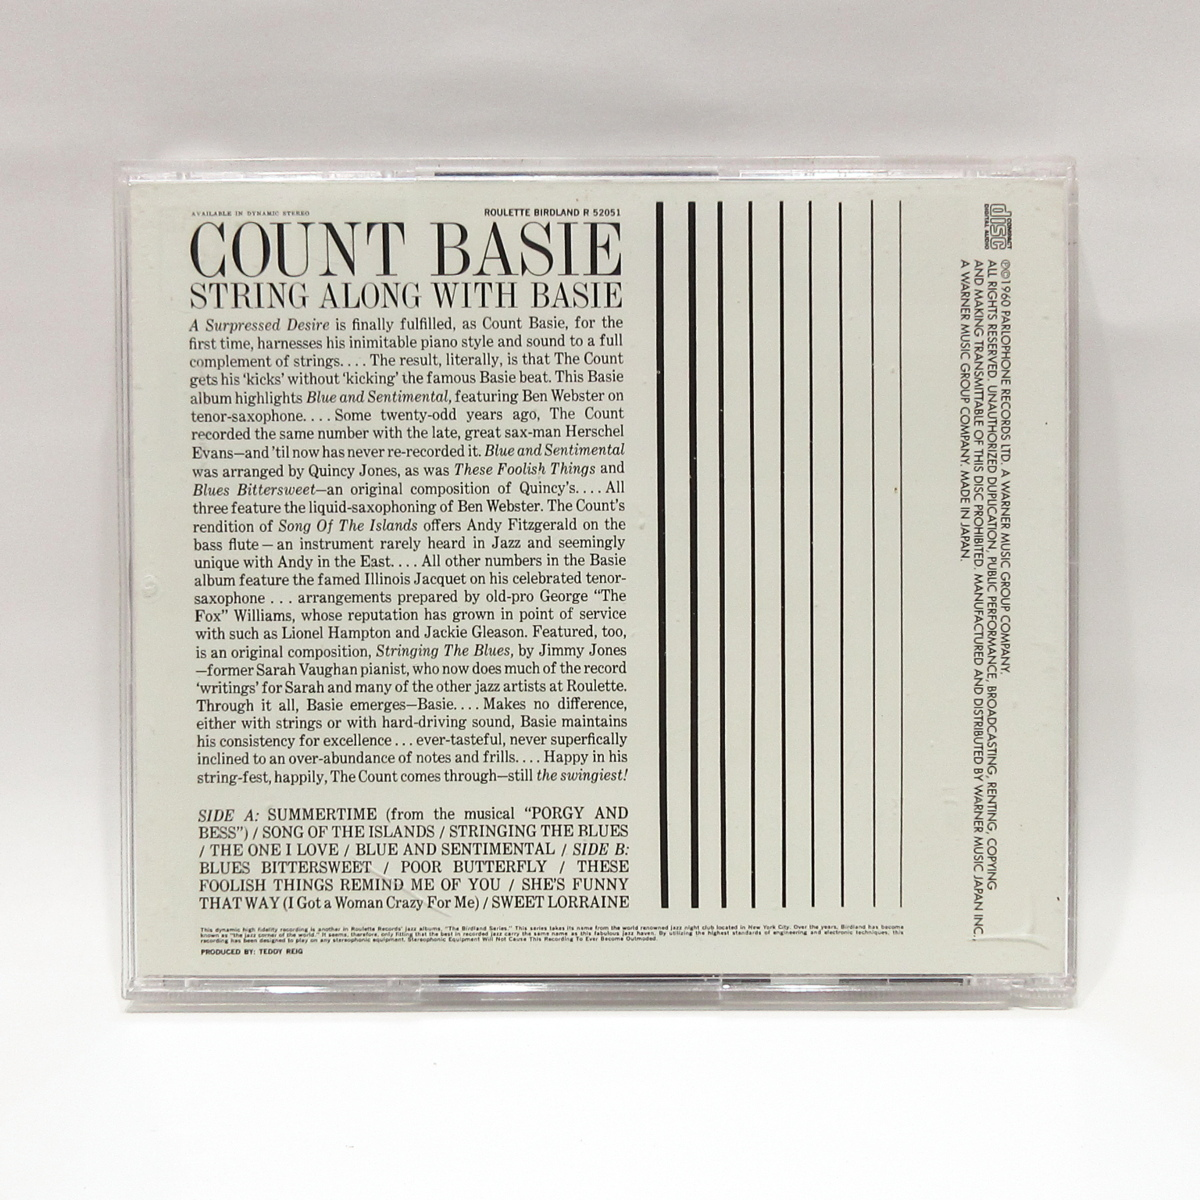 CD◆Count Basie / String Along With Basie◇カウント・ベイシー◆Roulette WPCR-16598_画像2